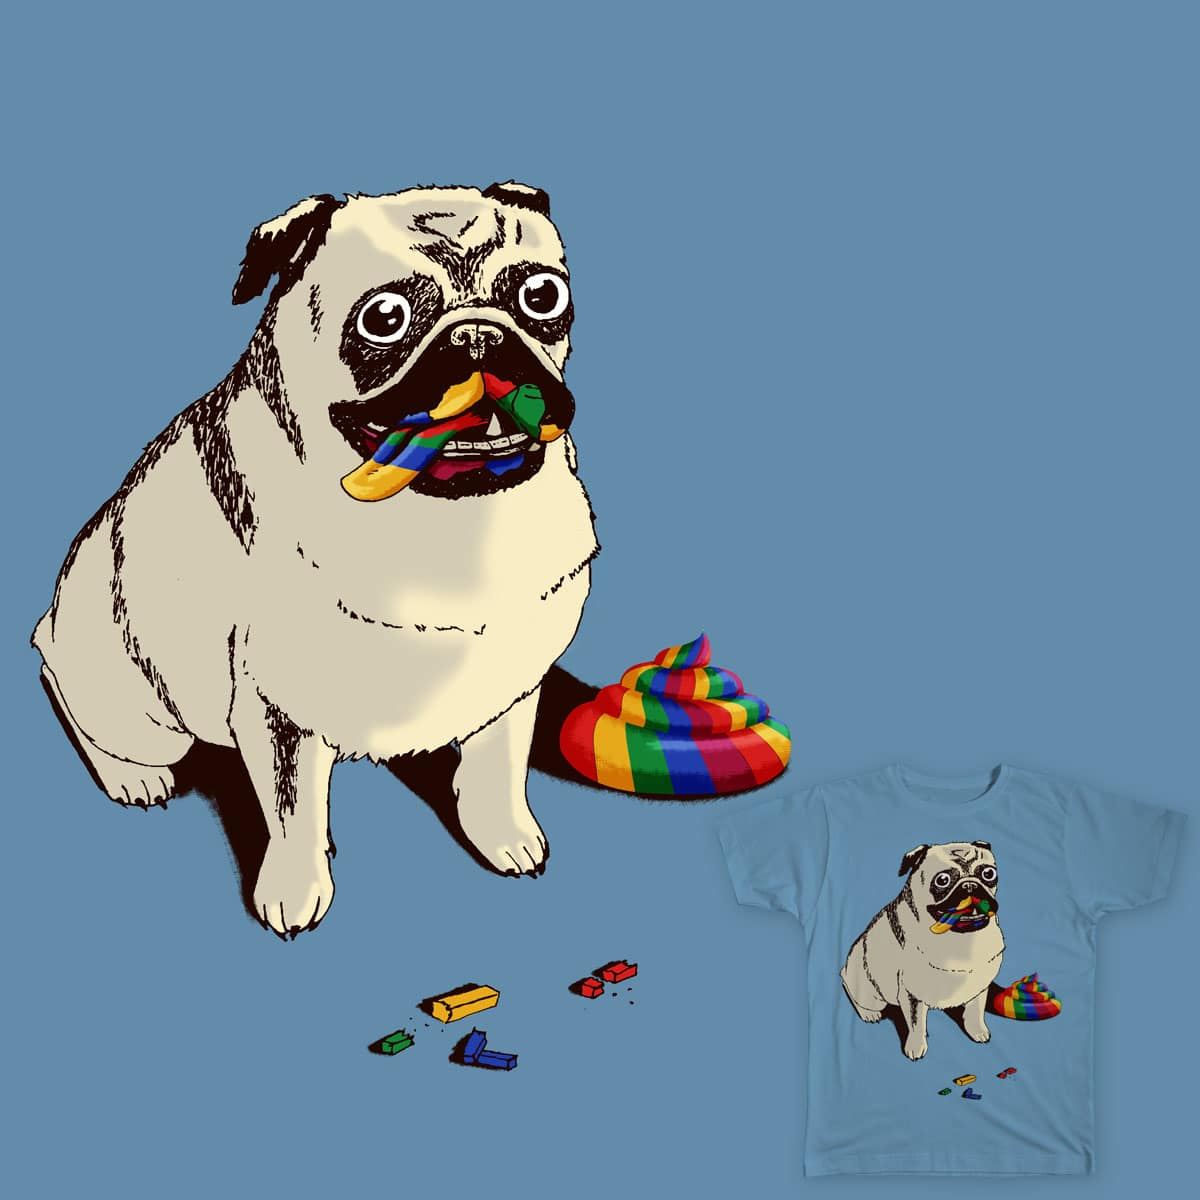 wasn't me by Willian_Richard and tobiasfonseca on Threadless